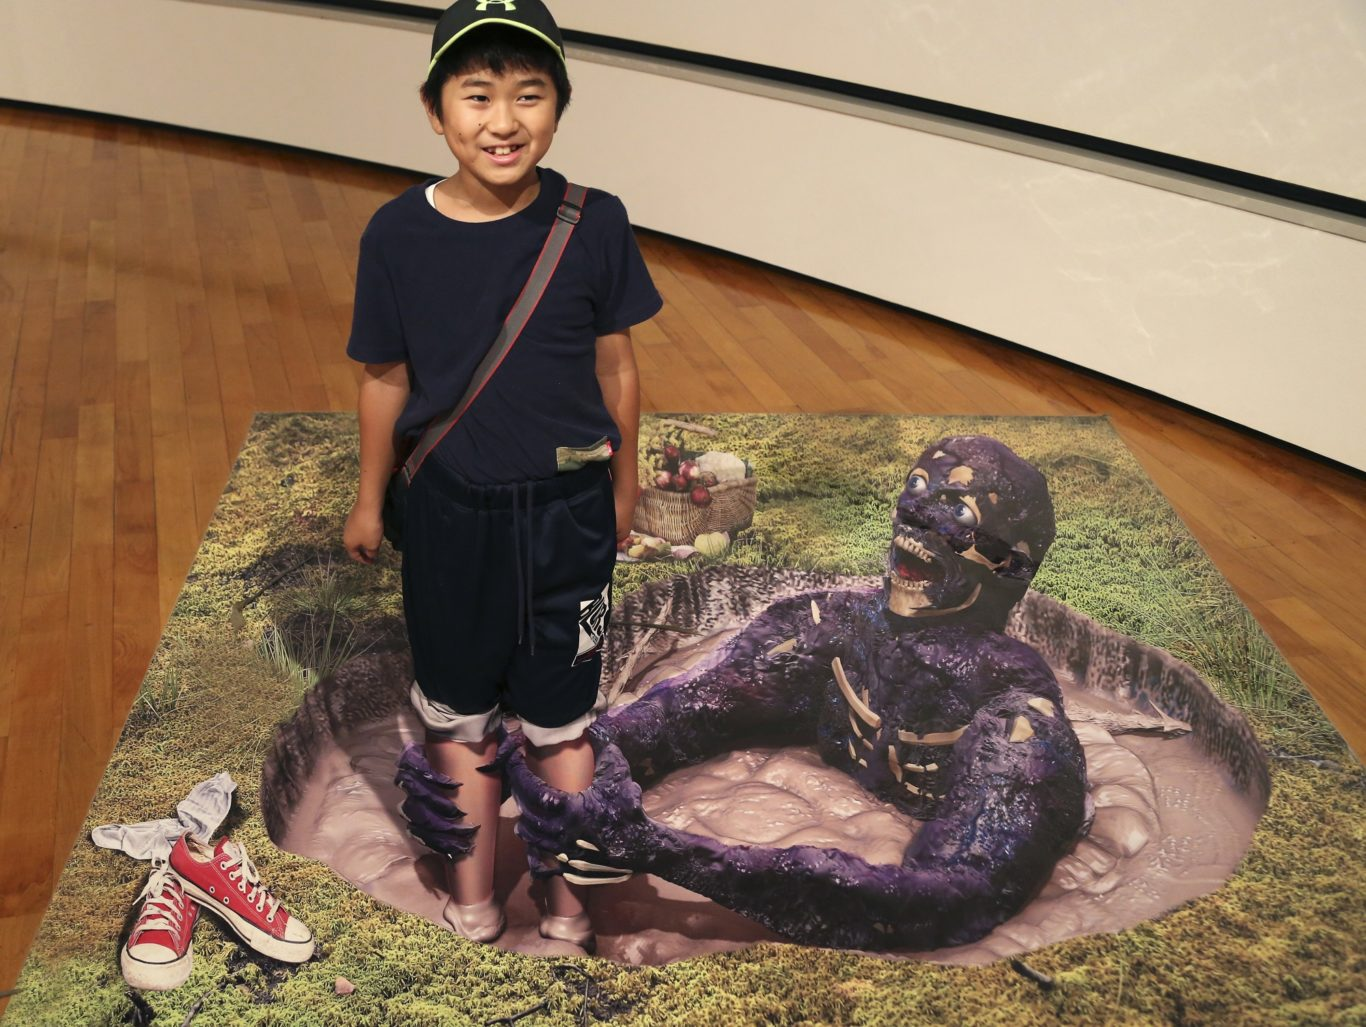 A boy poses with a 3D image at a 3D trick art exhibition by Japanese artist Masashi Hattori in Kawasaki, near Tokyo, Saturday, Aug. 5, 2017. (Koji Sasahara/AP/PA